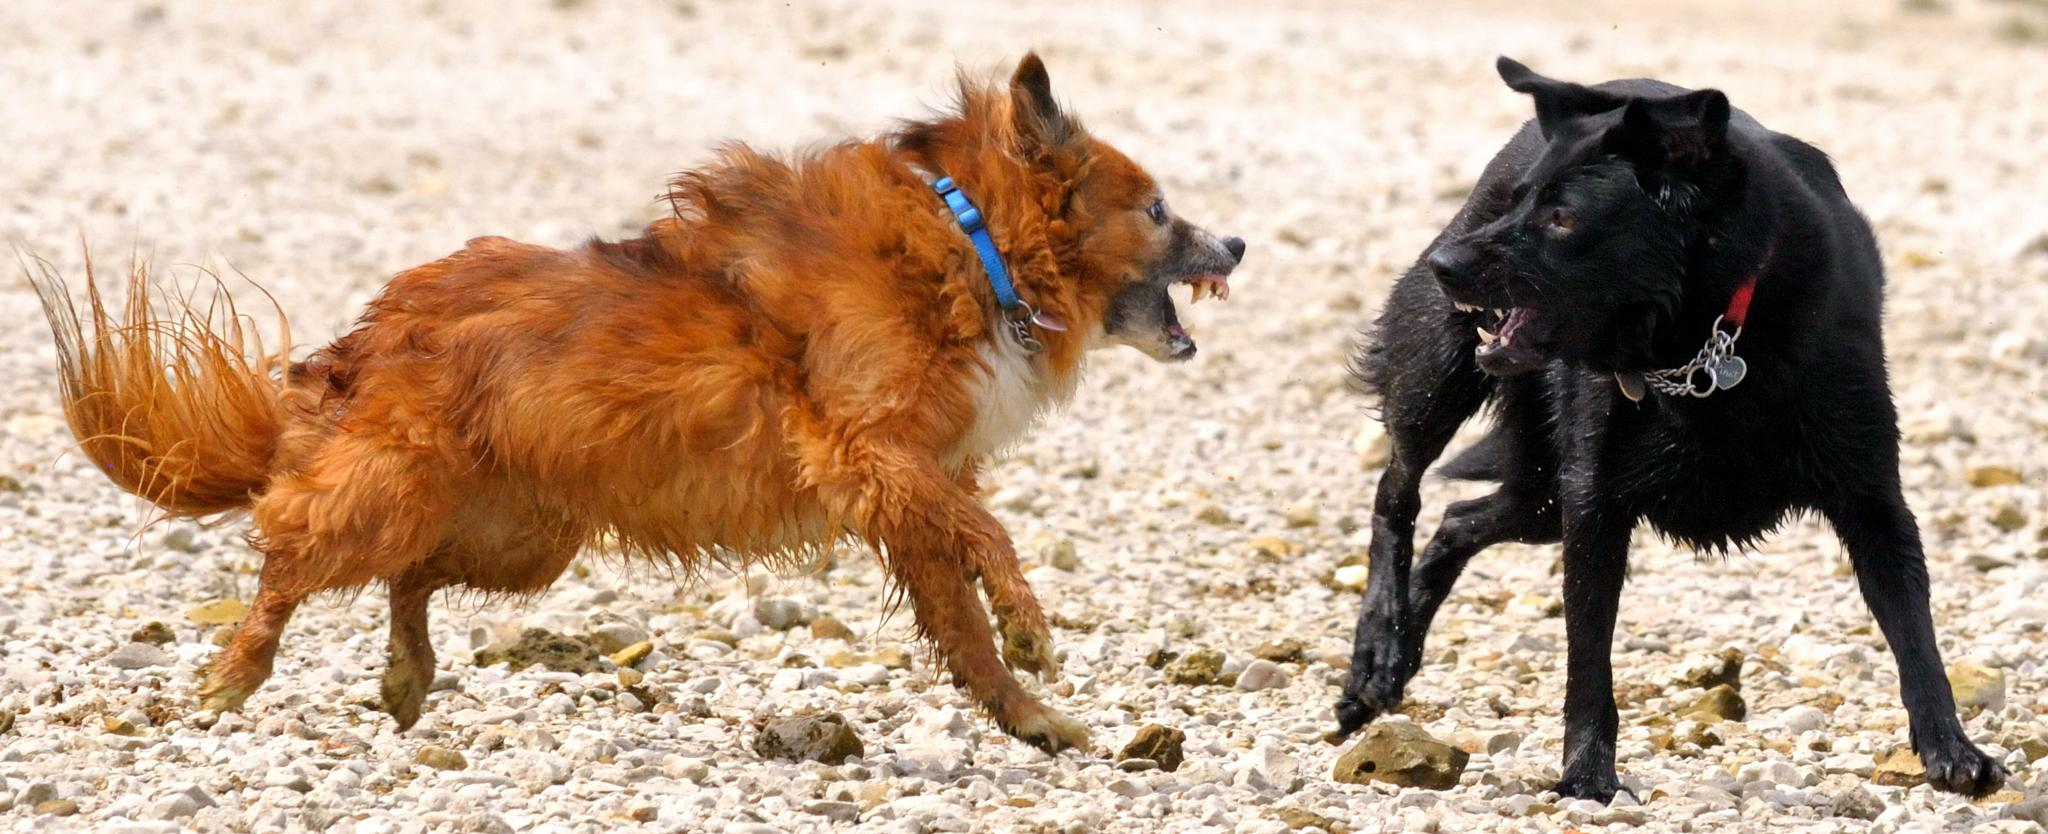 Best of Friends two dogs playing by John Bociek